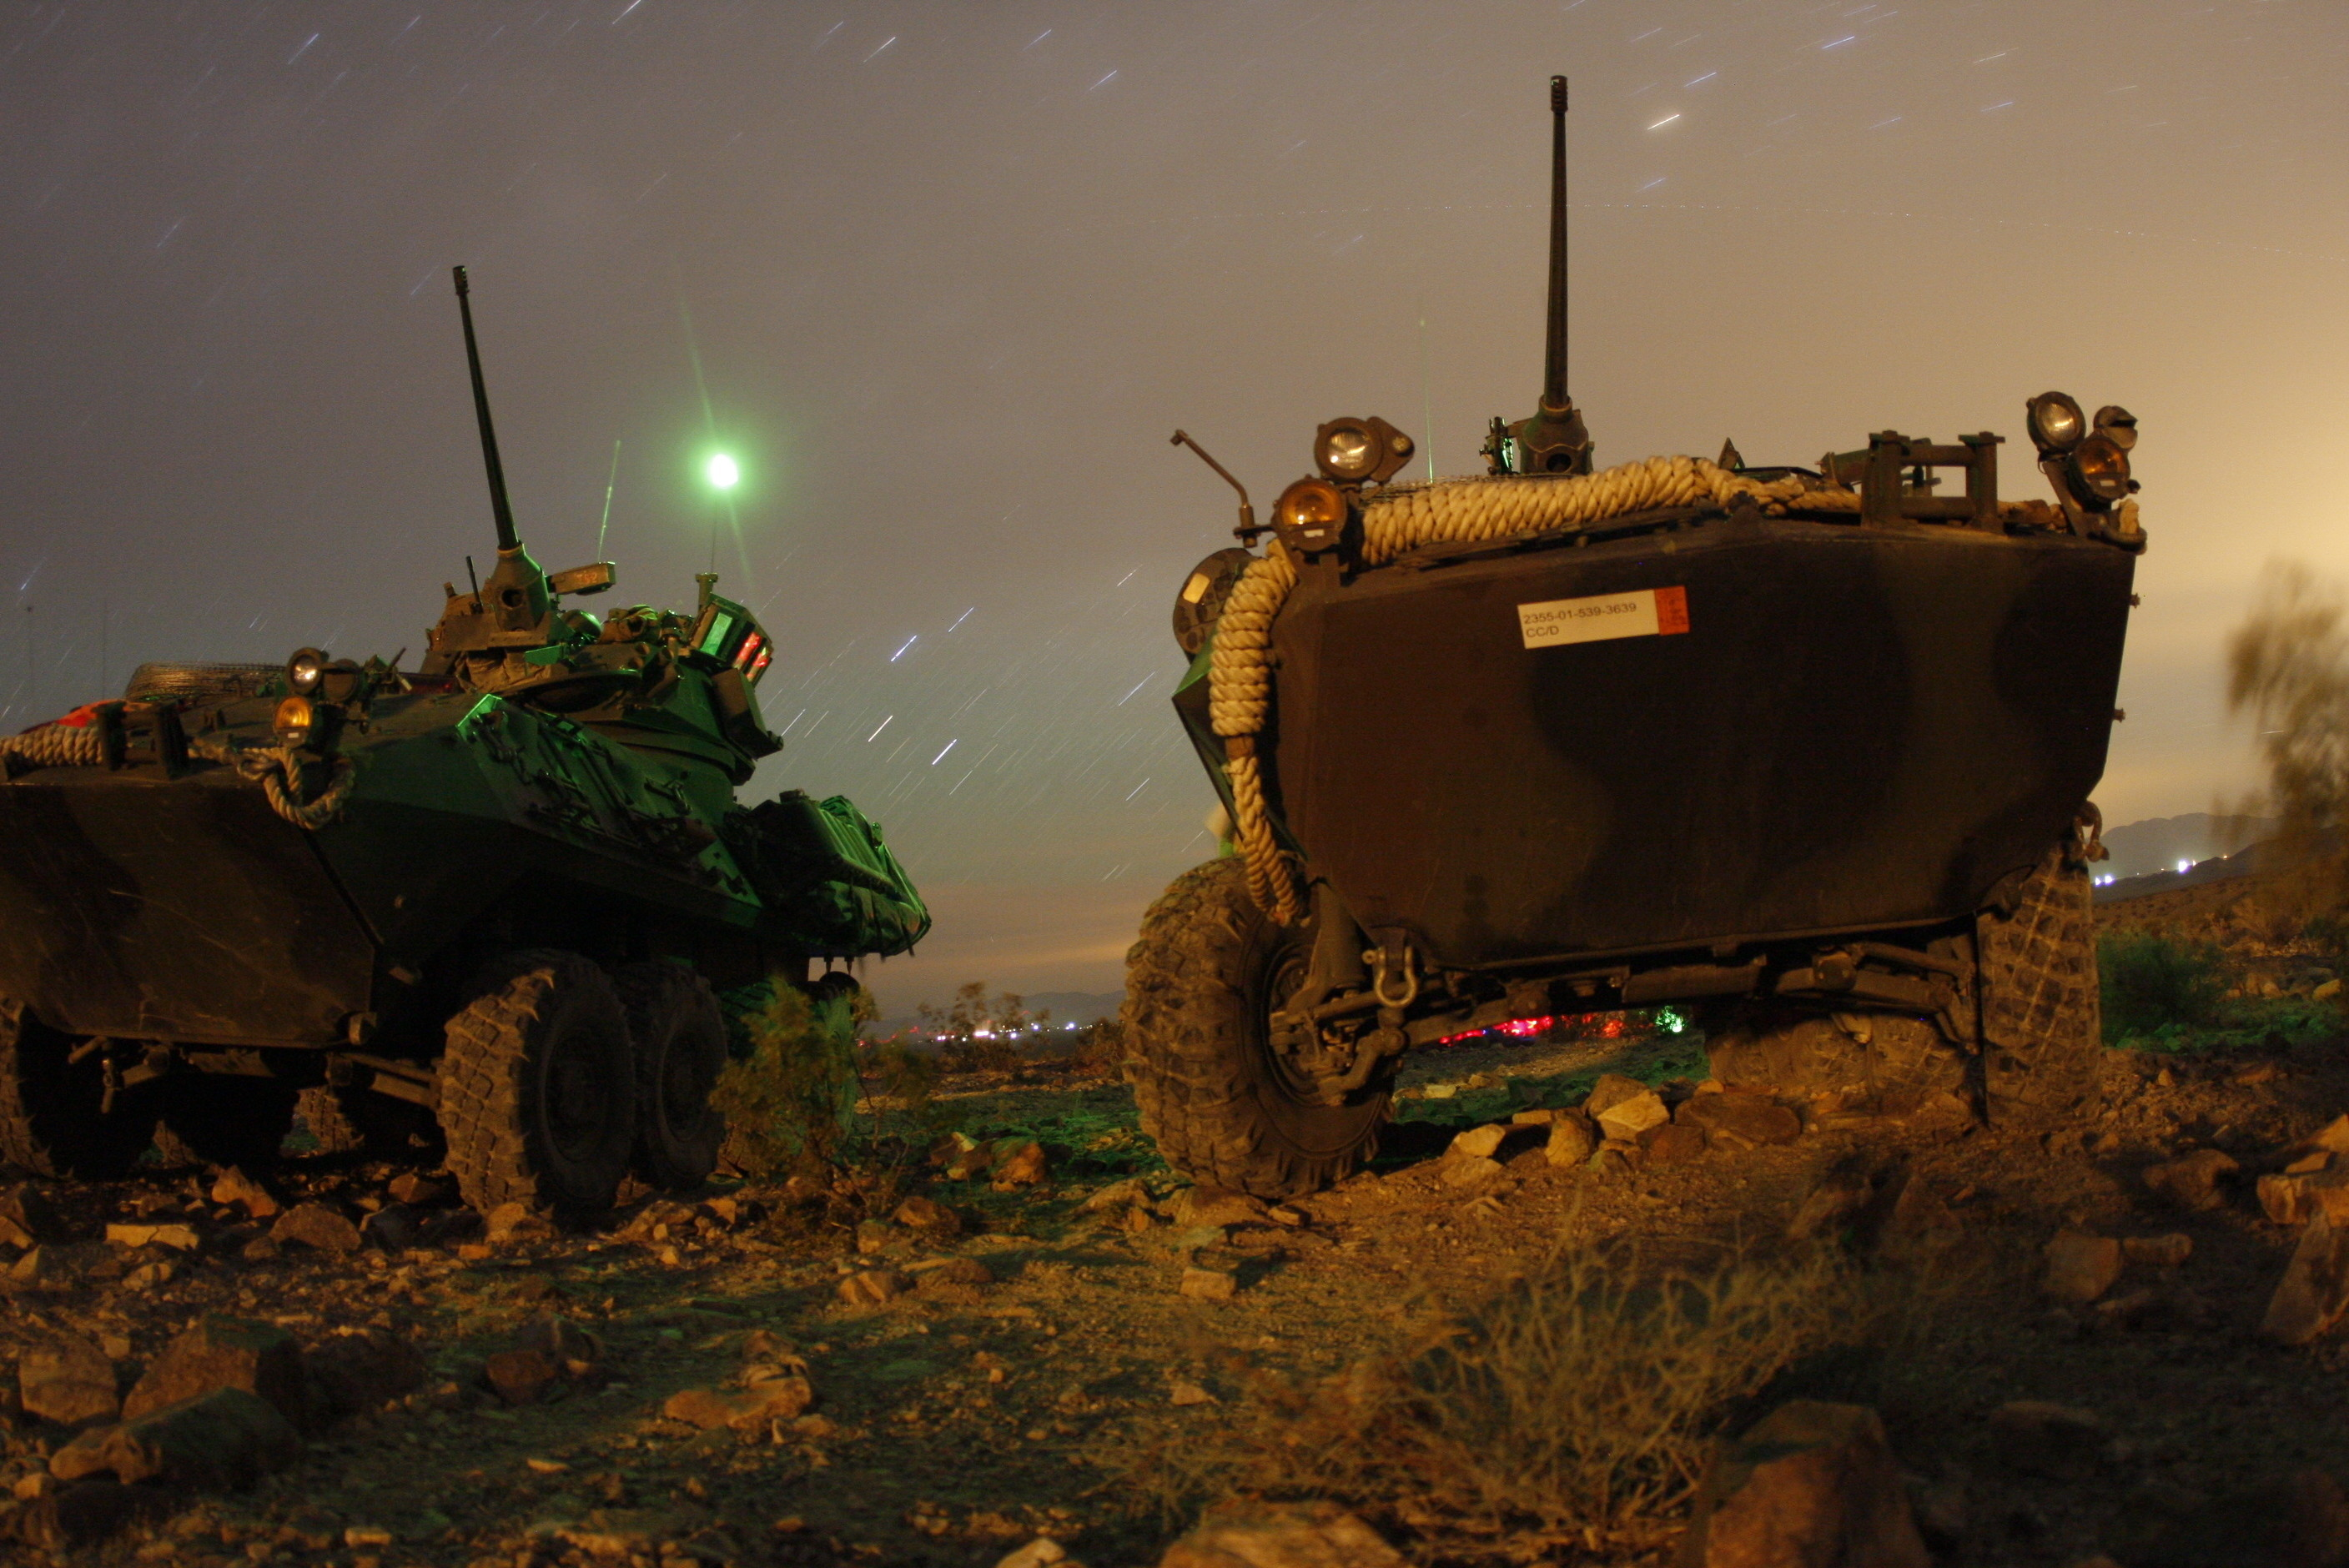 2816x1880 Download LAV25 A2 Light Armoured Vehicle U.S. Marine Corps wallpaper  ()